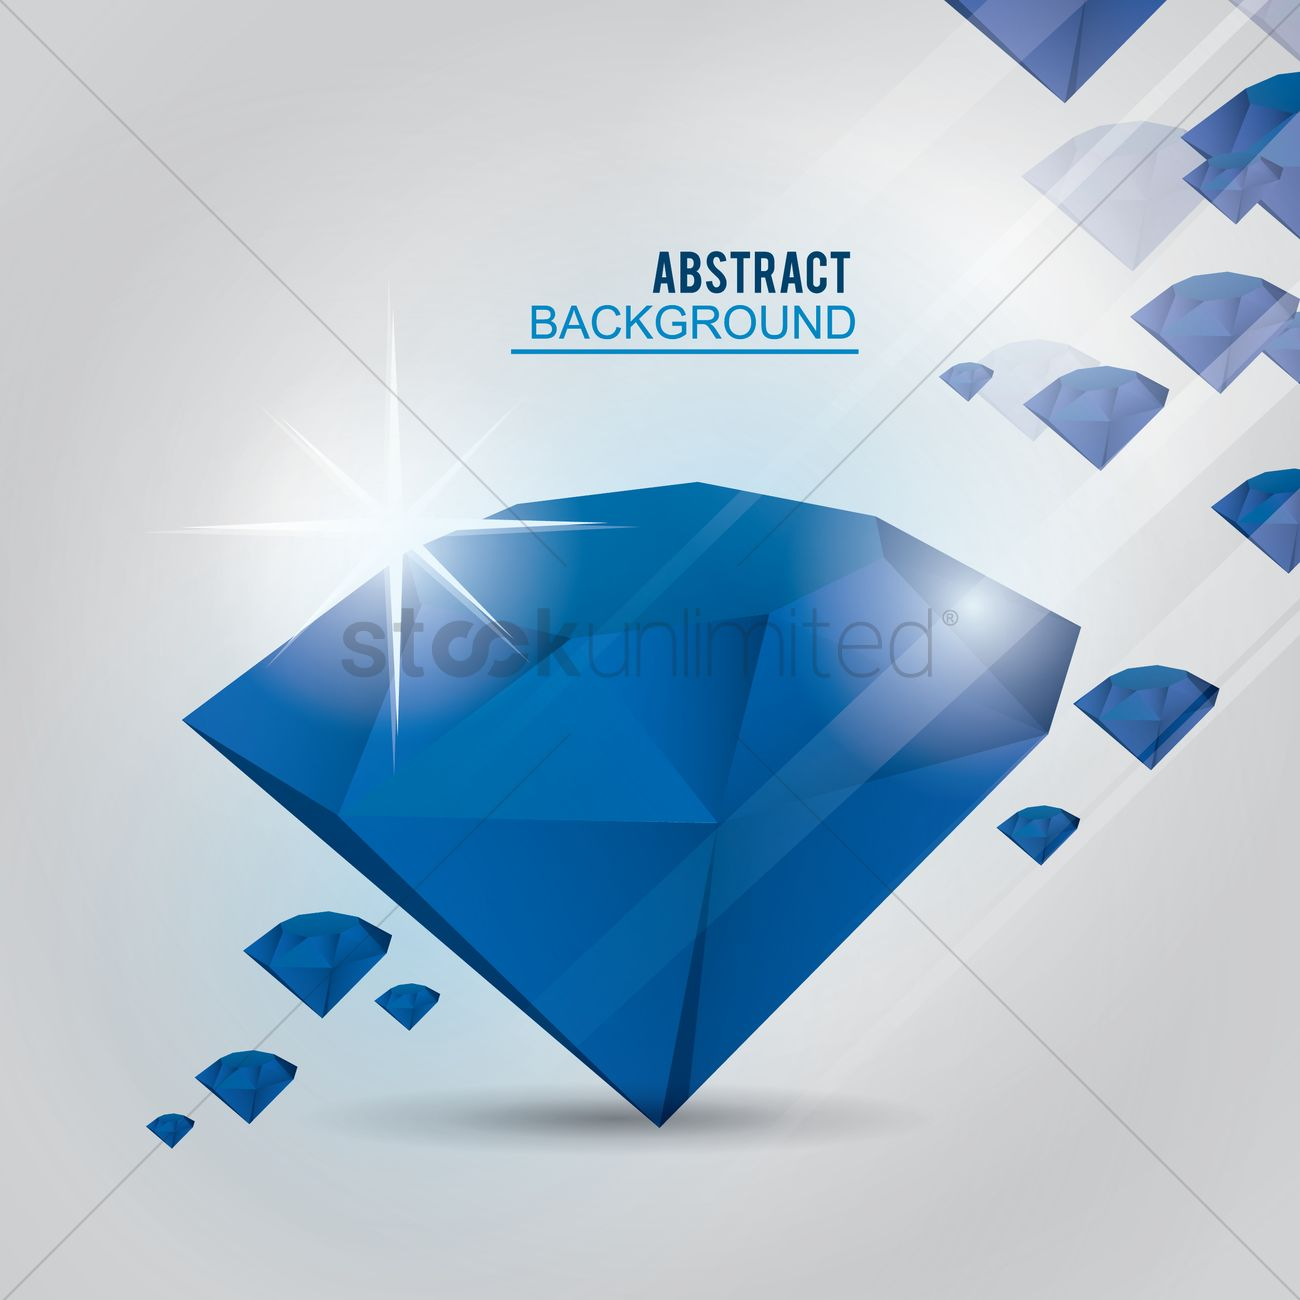 Abstract diamond background Vector Image - 1331148 | StockUnlimited